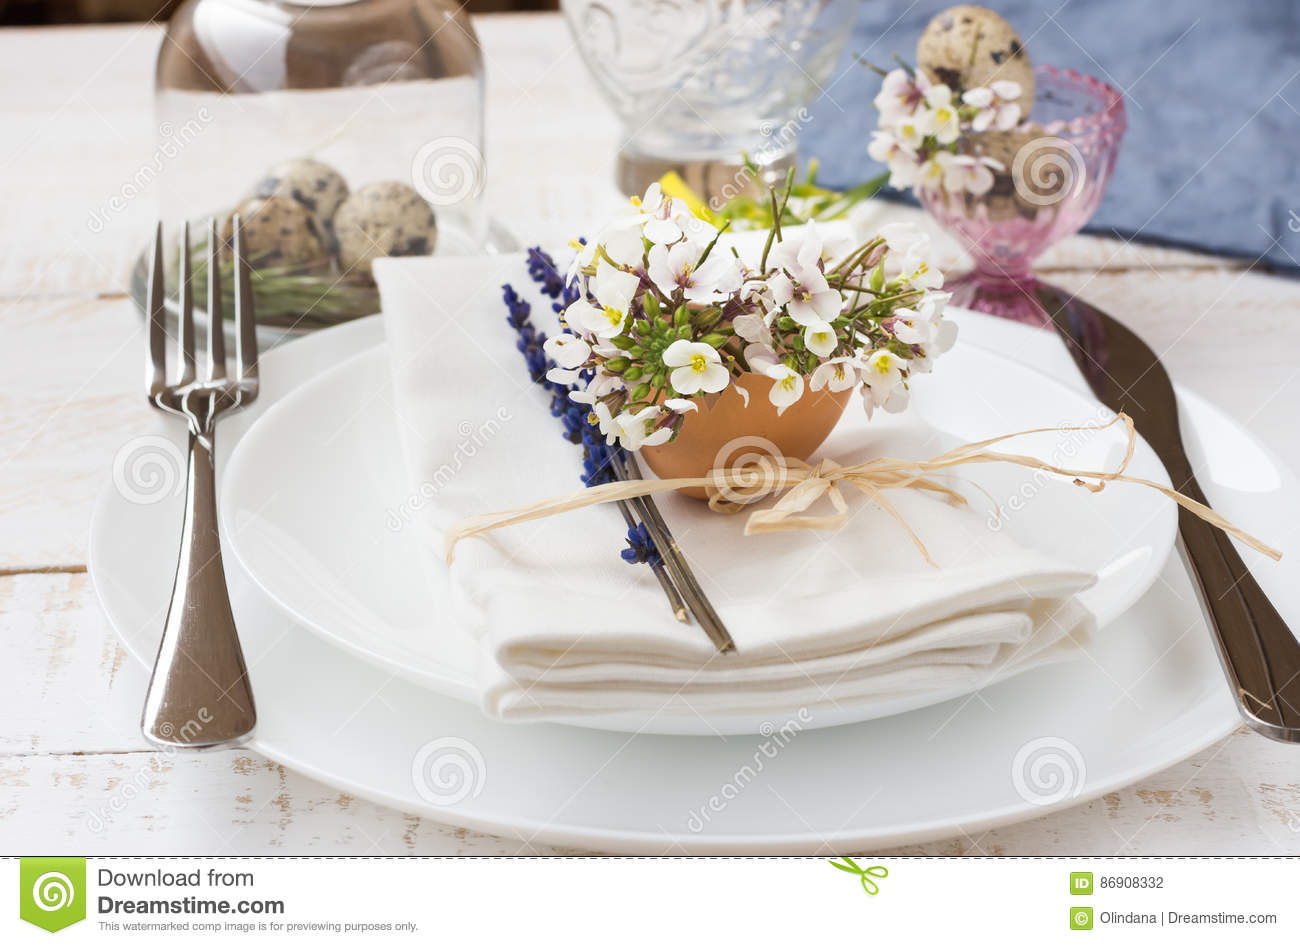 Irish Table Settings Wedding Or Easter Border Orchids And Ivy Royalty Free Stock Photo